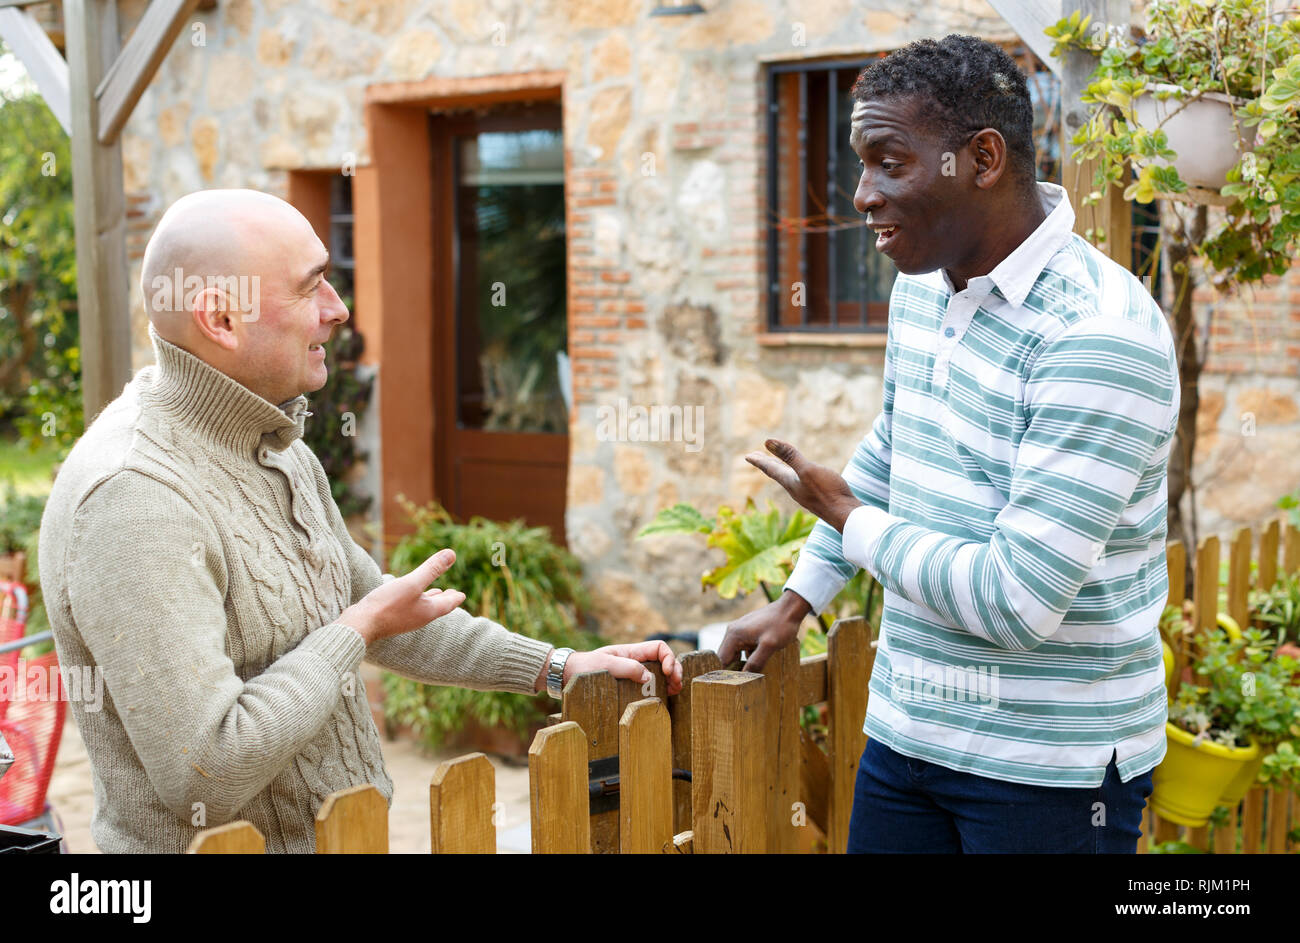 Two male farmers friendly talking outside next to wooden fence on background with brick house - Stock Image